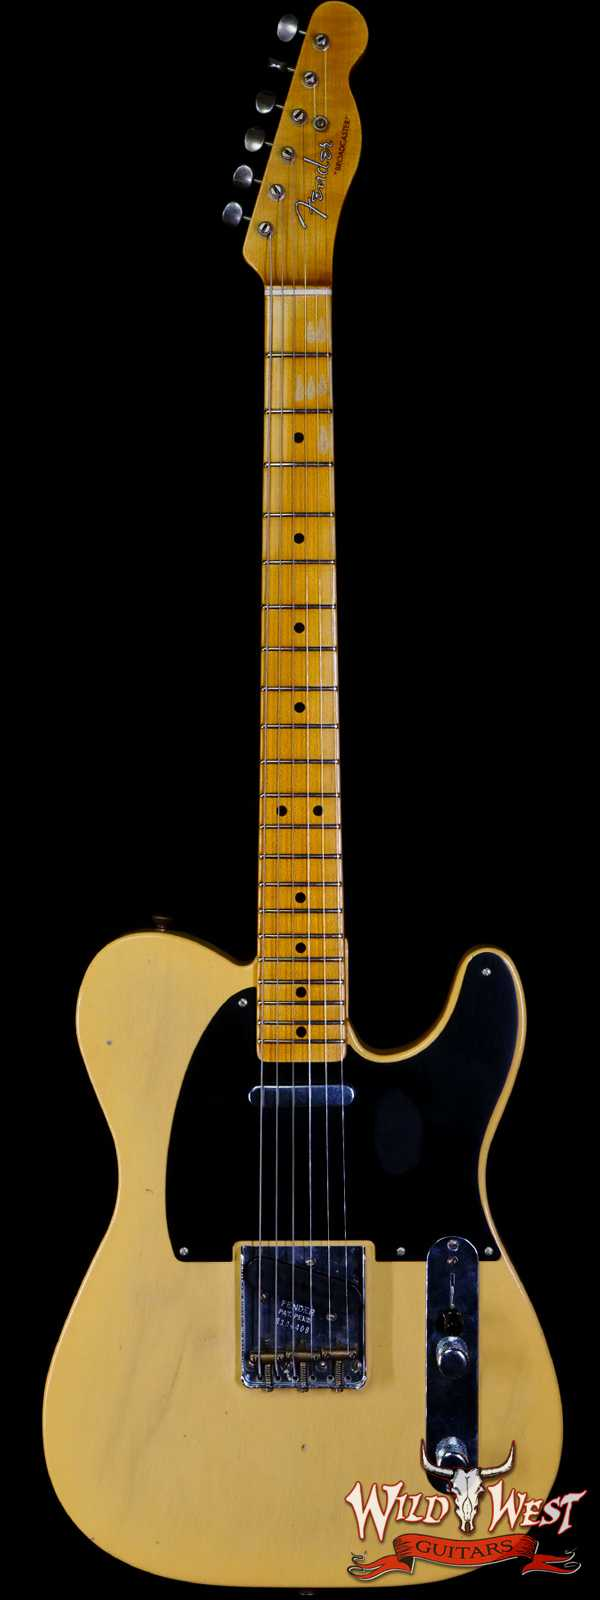 Fender Custom Shop Limited Edition 70th Anniversary Broadcaster (Telecaster) Journeyman Relic Nocaster Blonde R104408